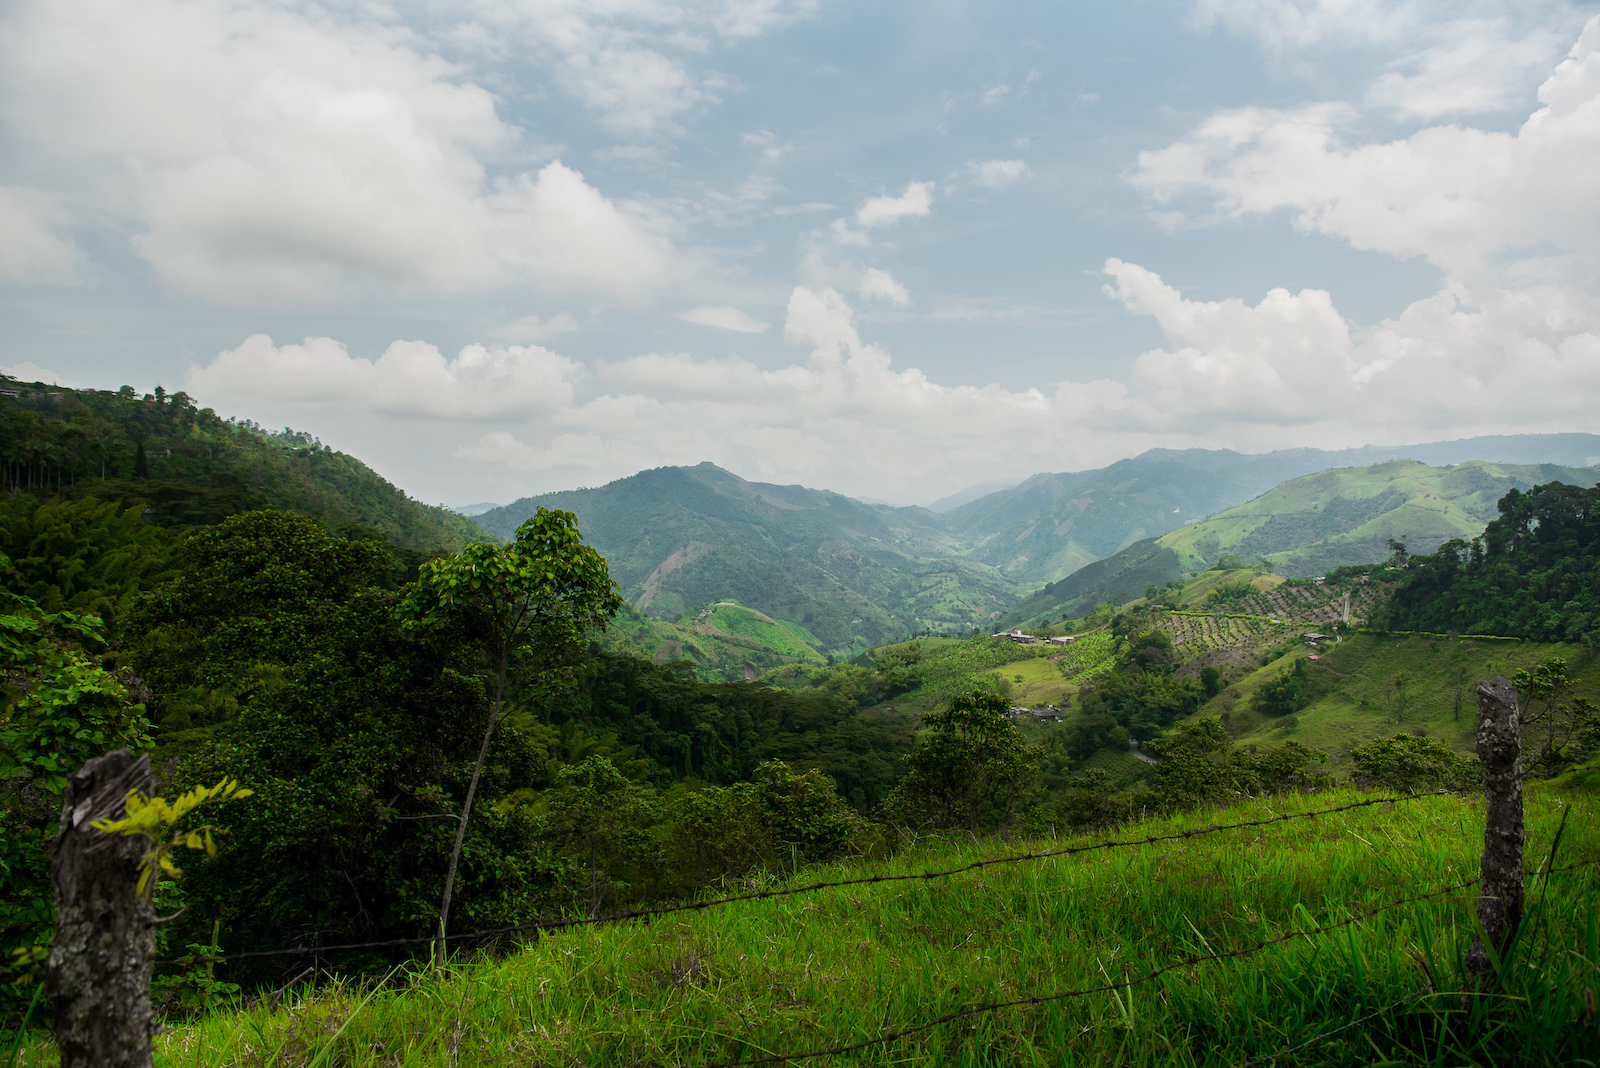 Round 2 in Colombia brought us to landscapes that could not be more opposite than the week before